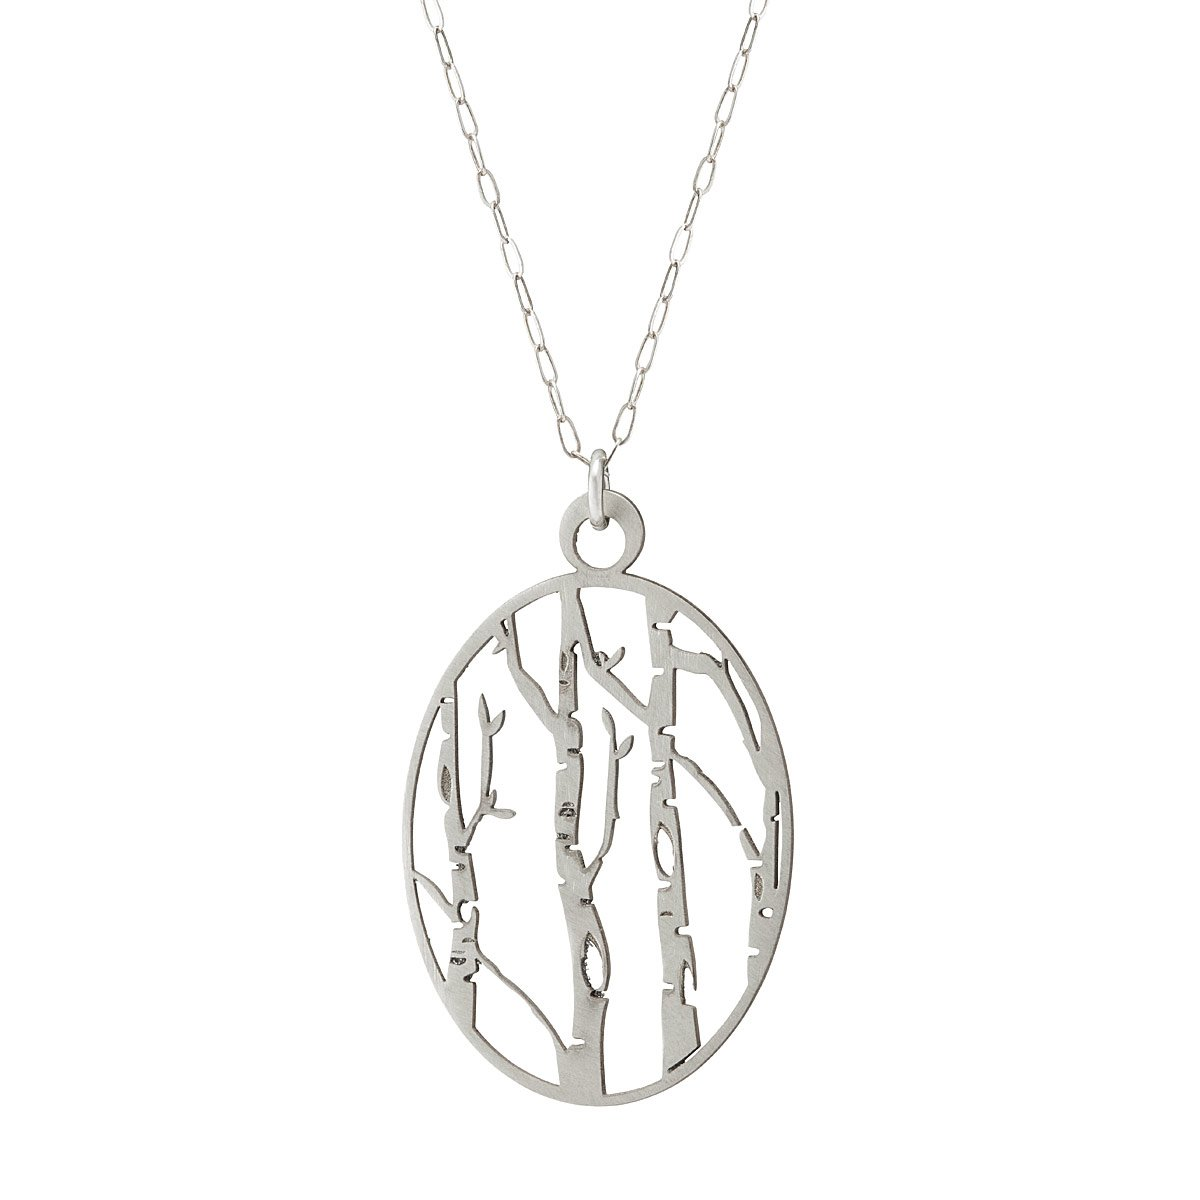 oak necklaces l silver pandora the necklace gates southern in tree family pendant sterling